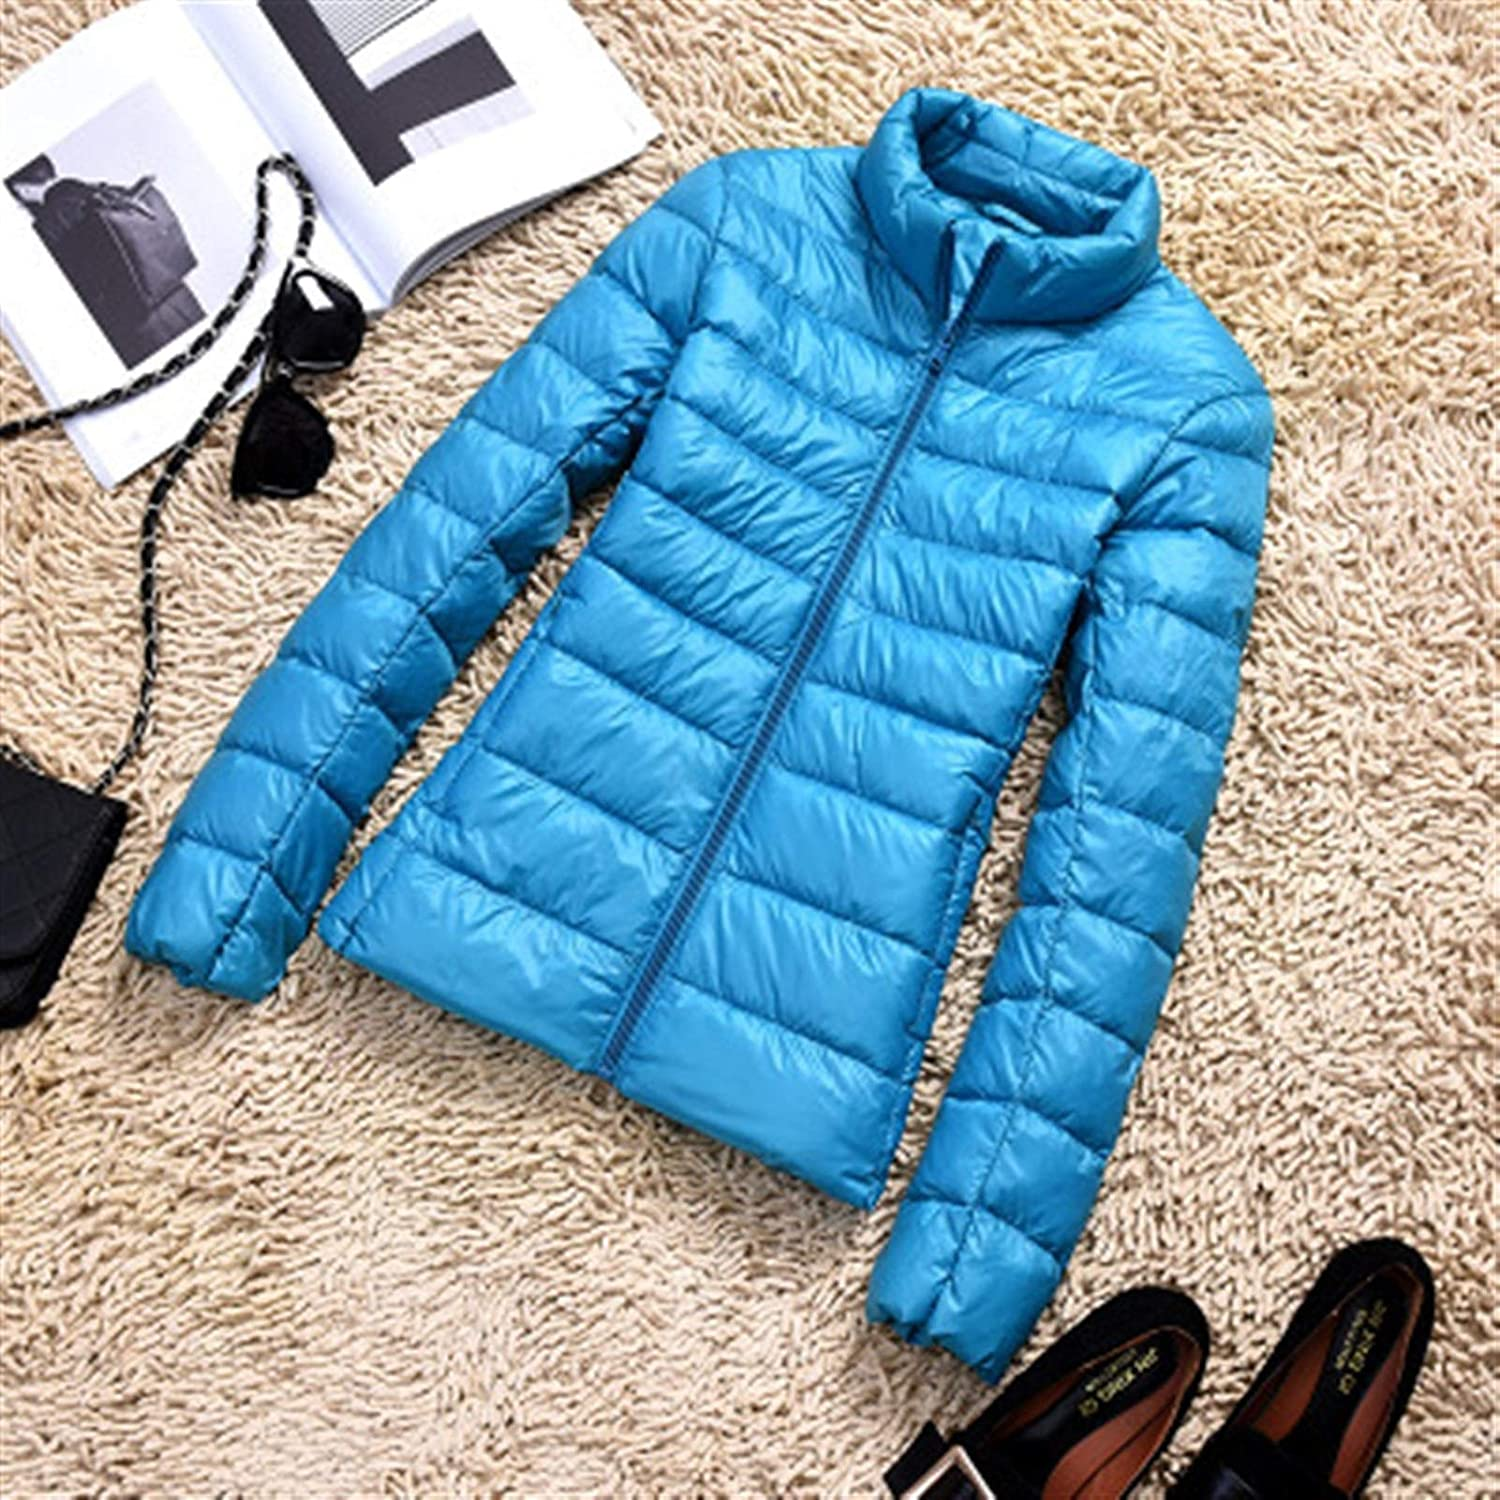 Thickened Down Jacket Leather Plaid Winter Austin Mall 9 Super beauty product restock quality top! Brand New 2019 Coat